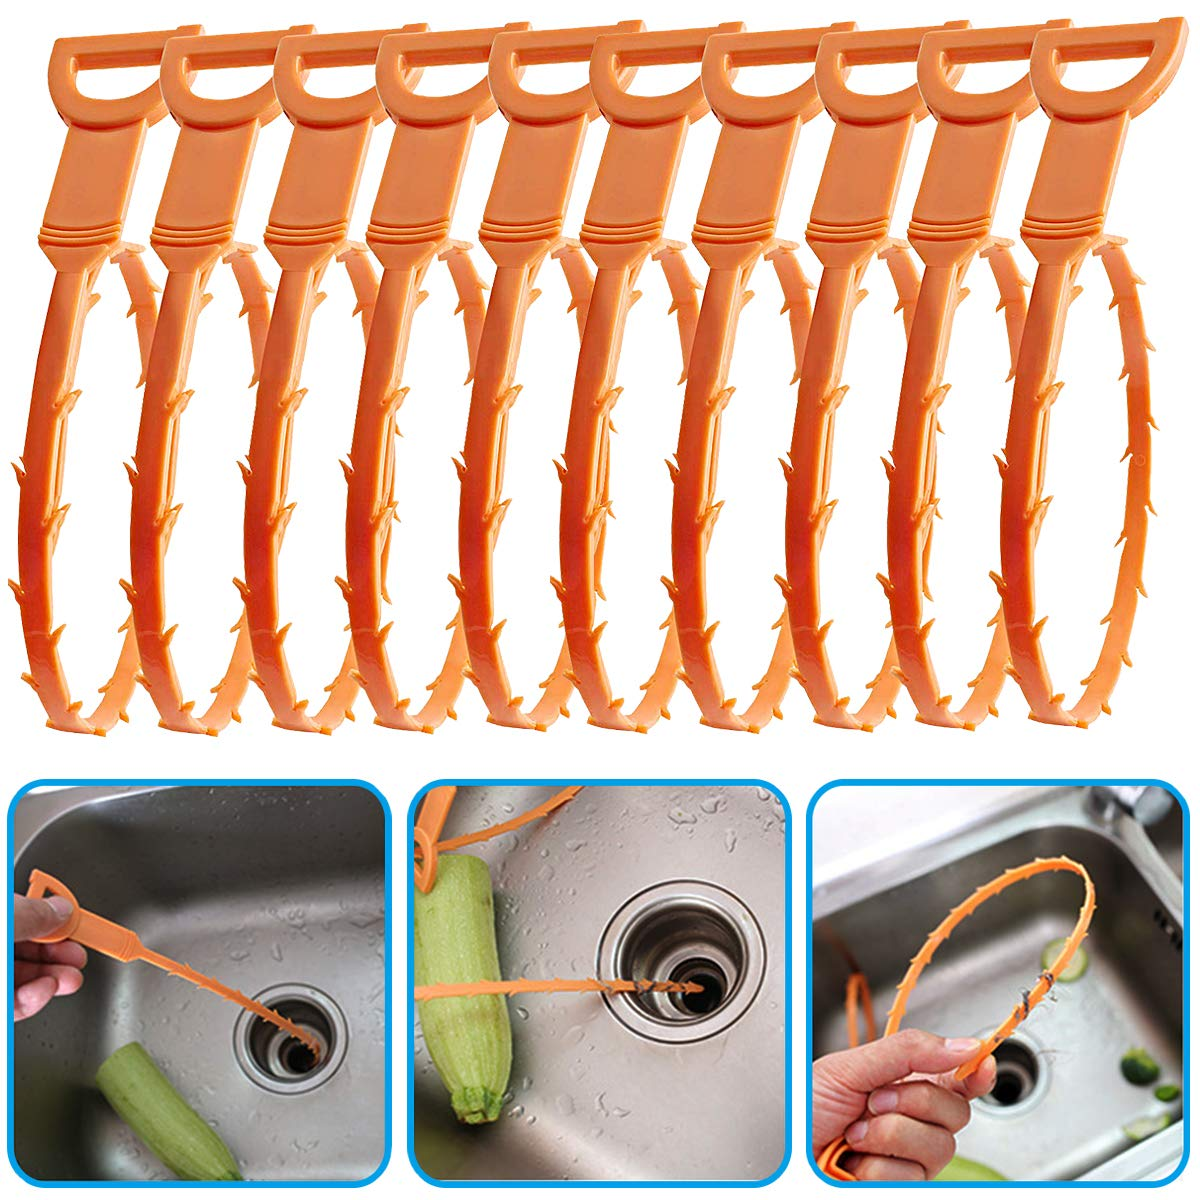 Mcree 10 Pcs Drain Snake for Drain Clog Hair Remover Cleaning Tool Drain UnBlocker Tool/Hair Remover Sink/Shower Cleaner Cleaning/Plumbers U Plunger/Bend Snake Catcher for Toilet Kitchen Bathroom Dazzling Sunshine